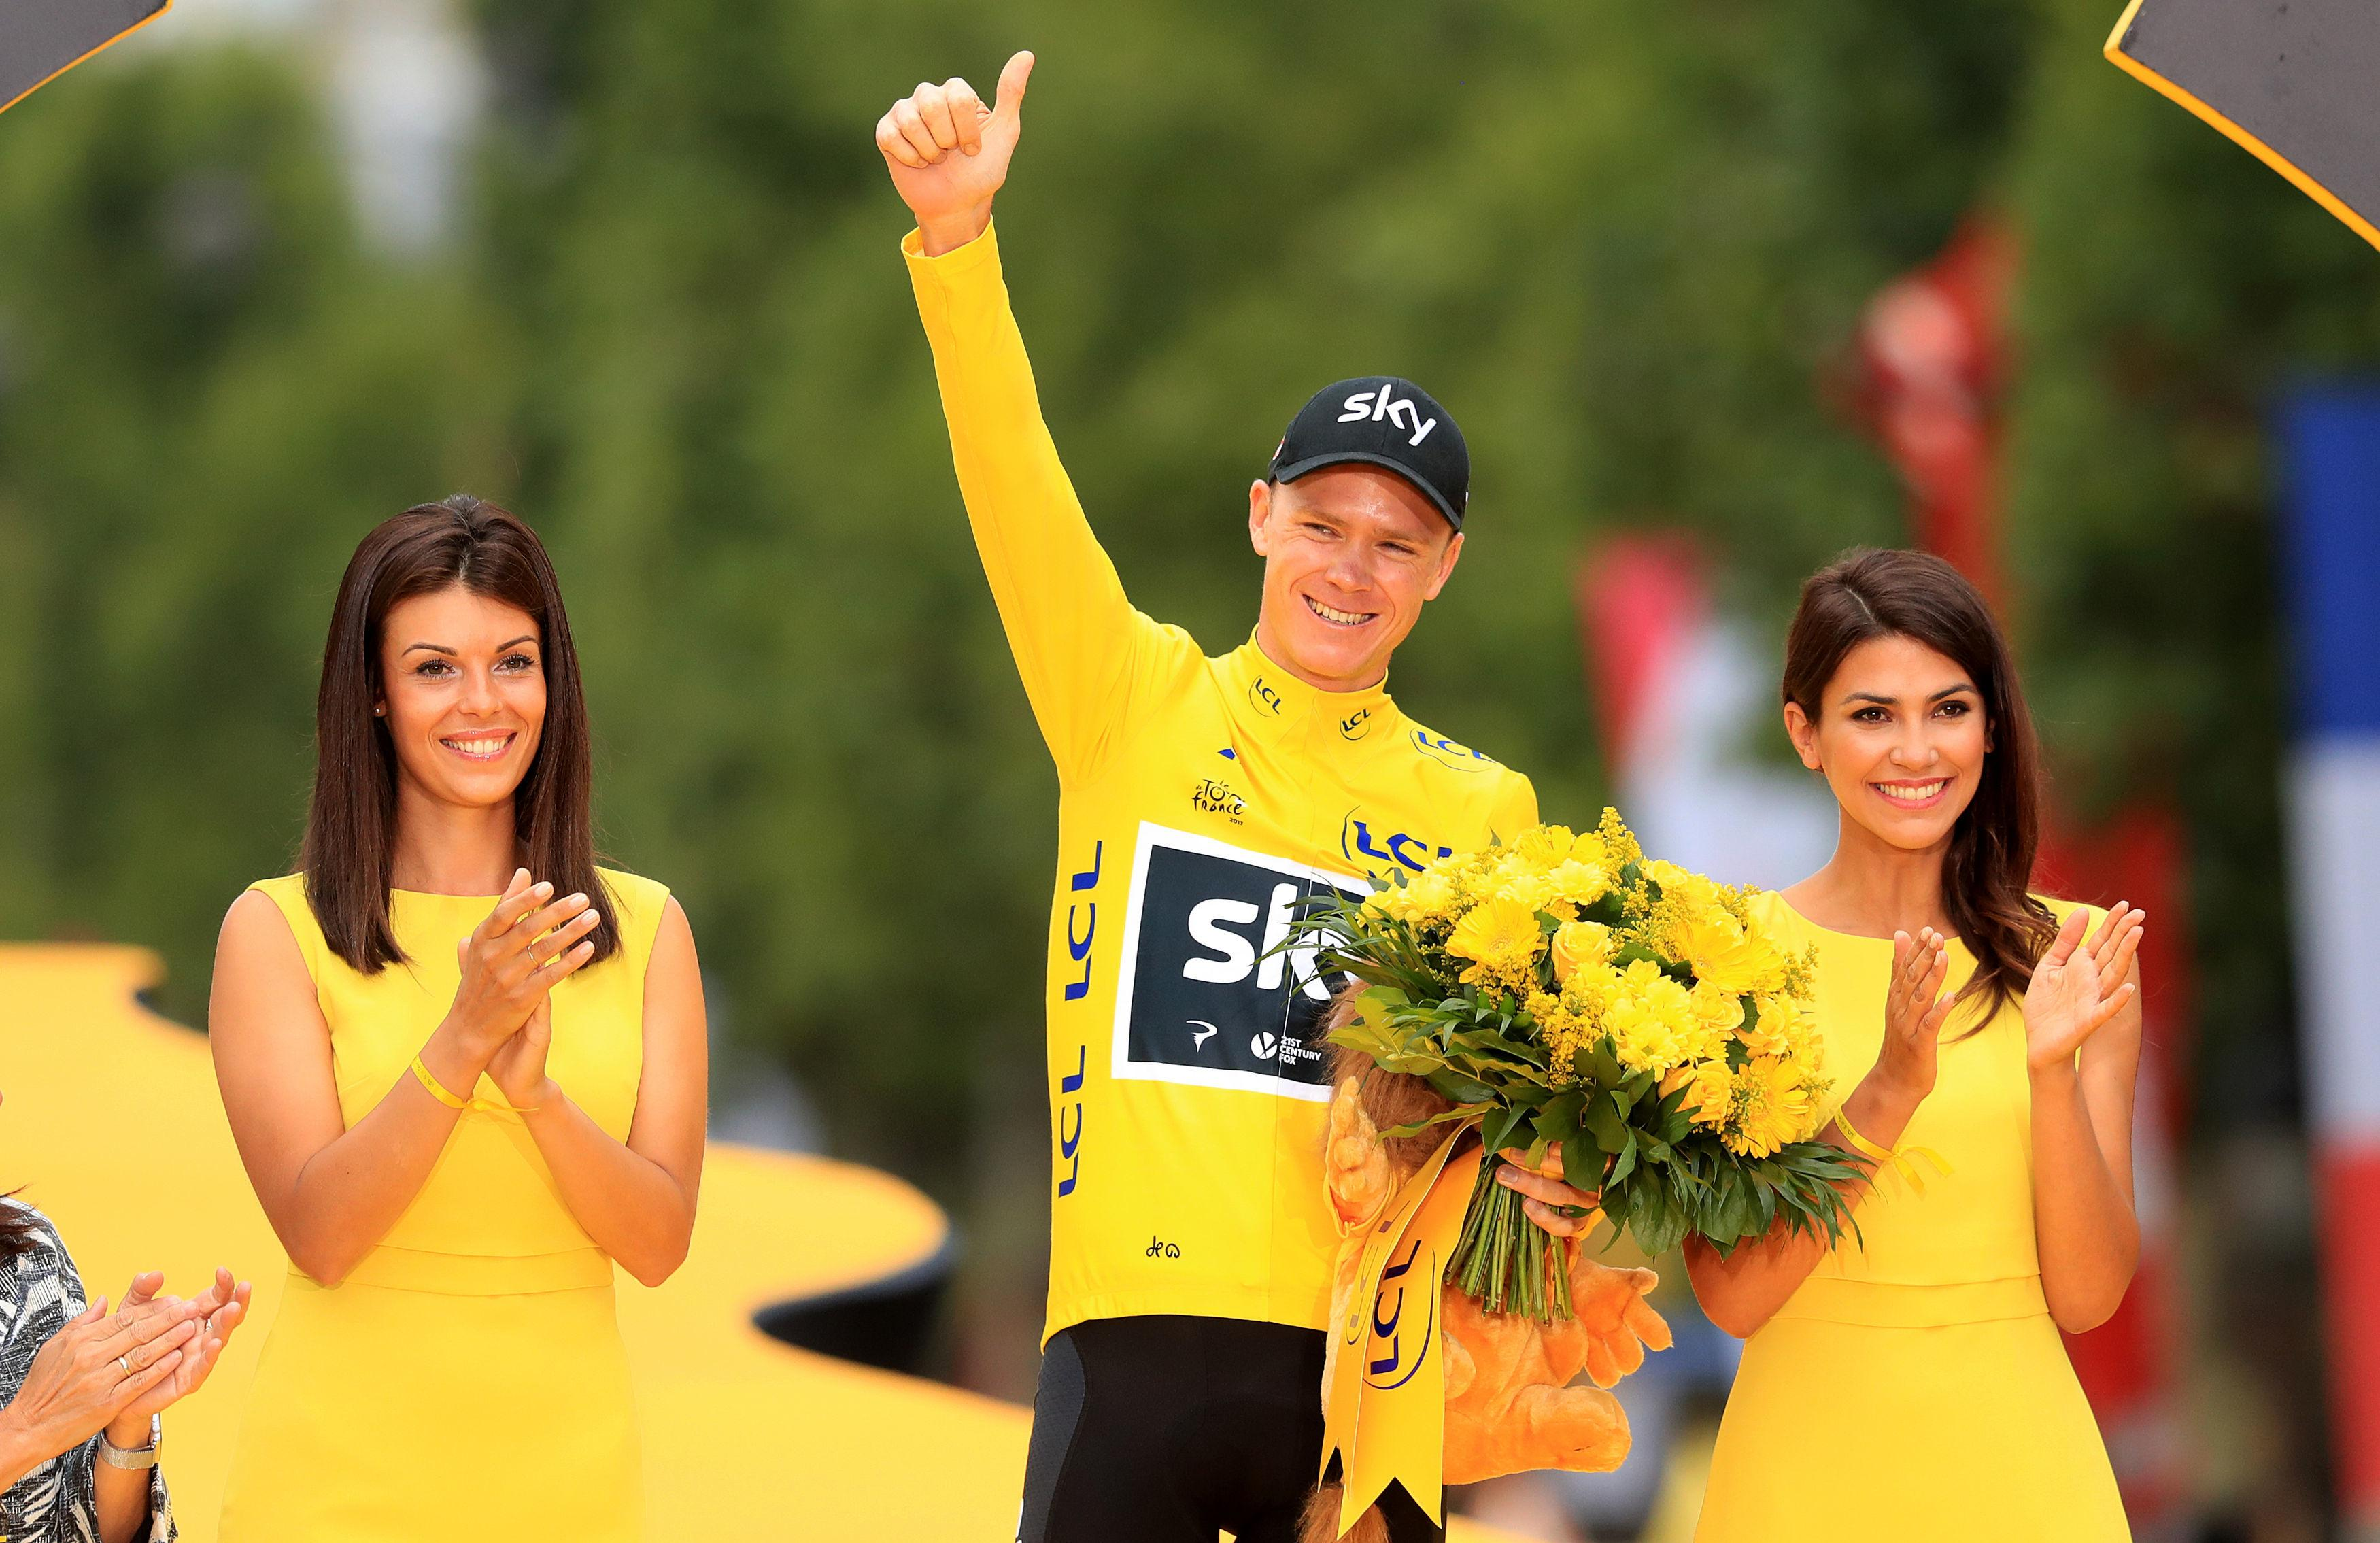 Chris Froome would go joint top of the all-time list with a fifth Tour de France victory